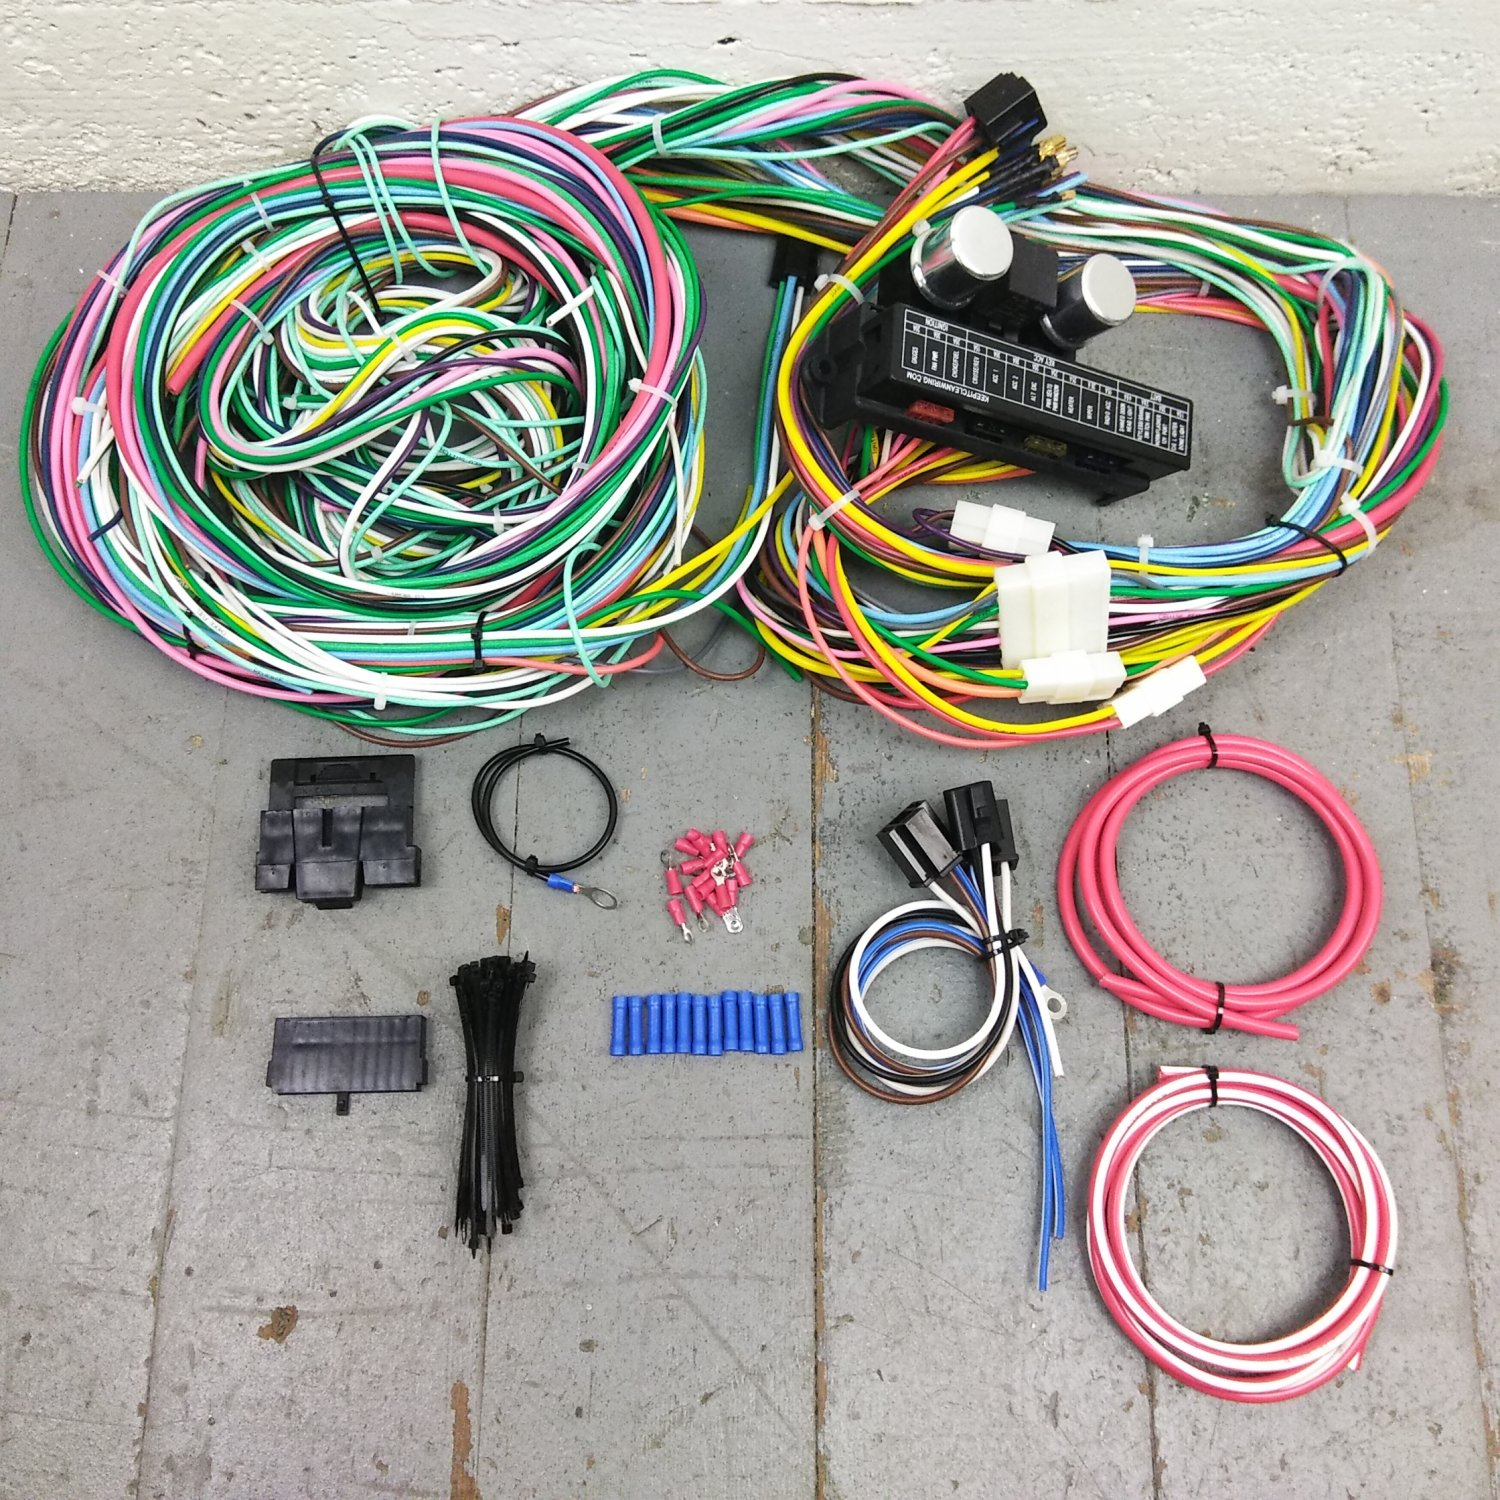 hight resolution of 1955 1957 chevy bel air wire harness upgrade kit fits painless fuse block new bar product description c